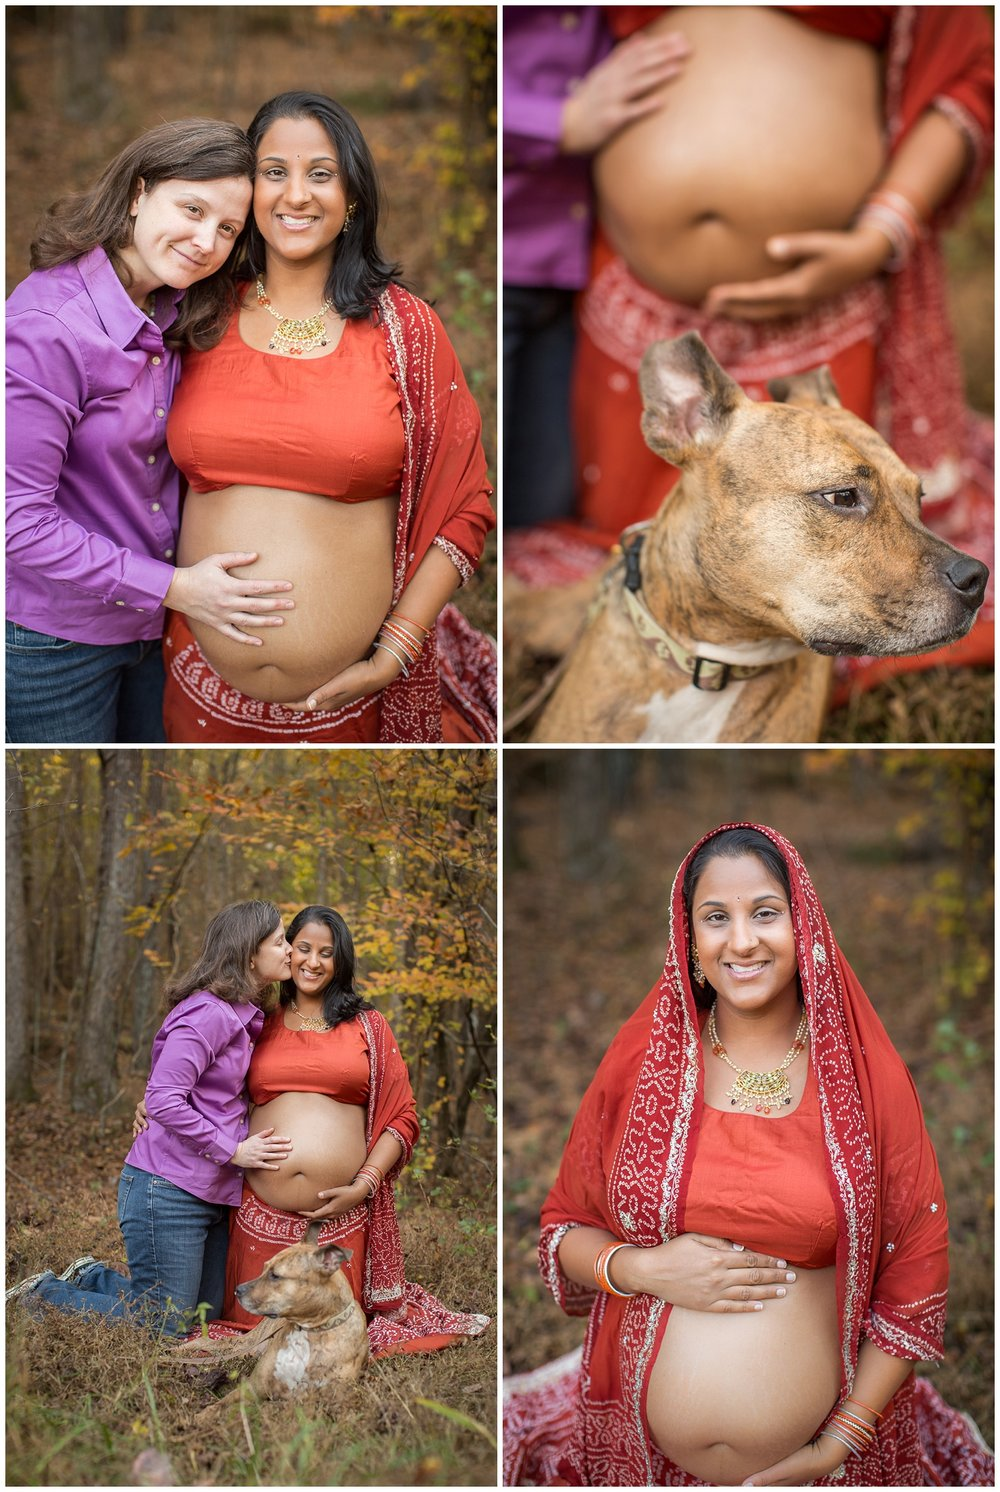 Durham-maternity-photographers-004.JPG